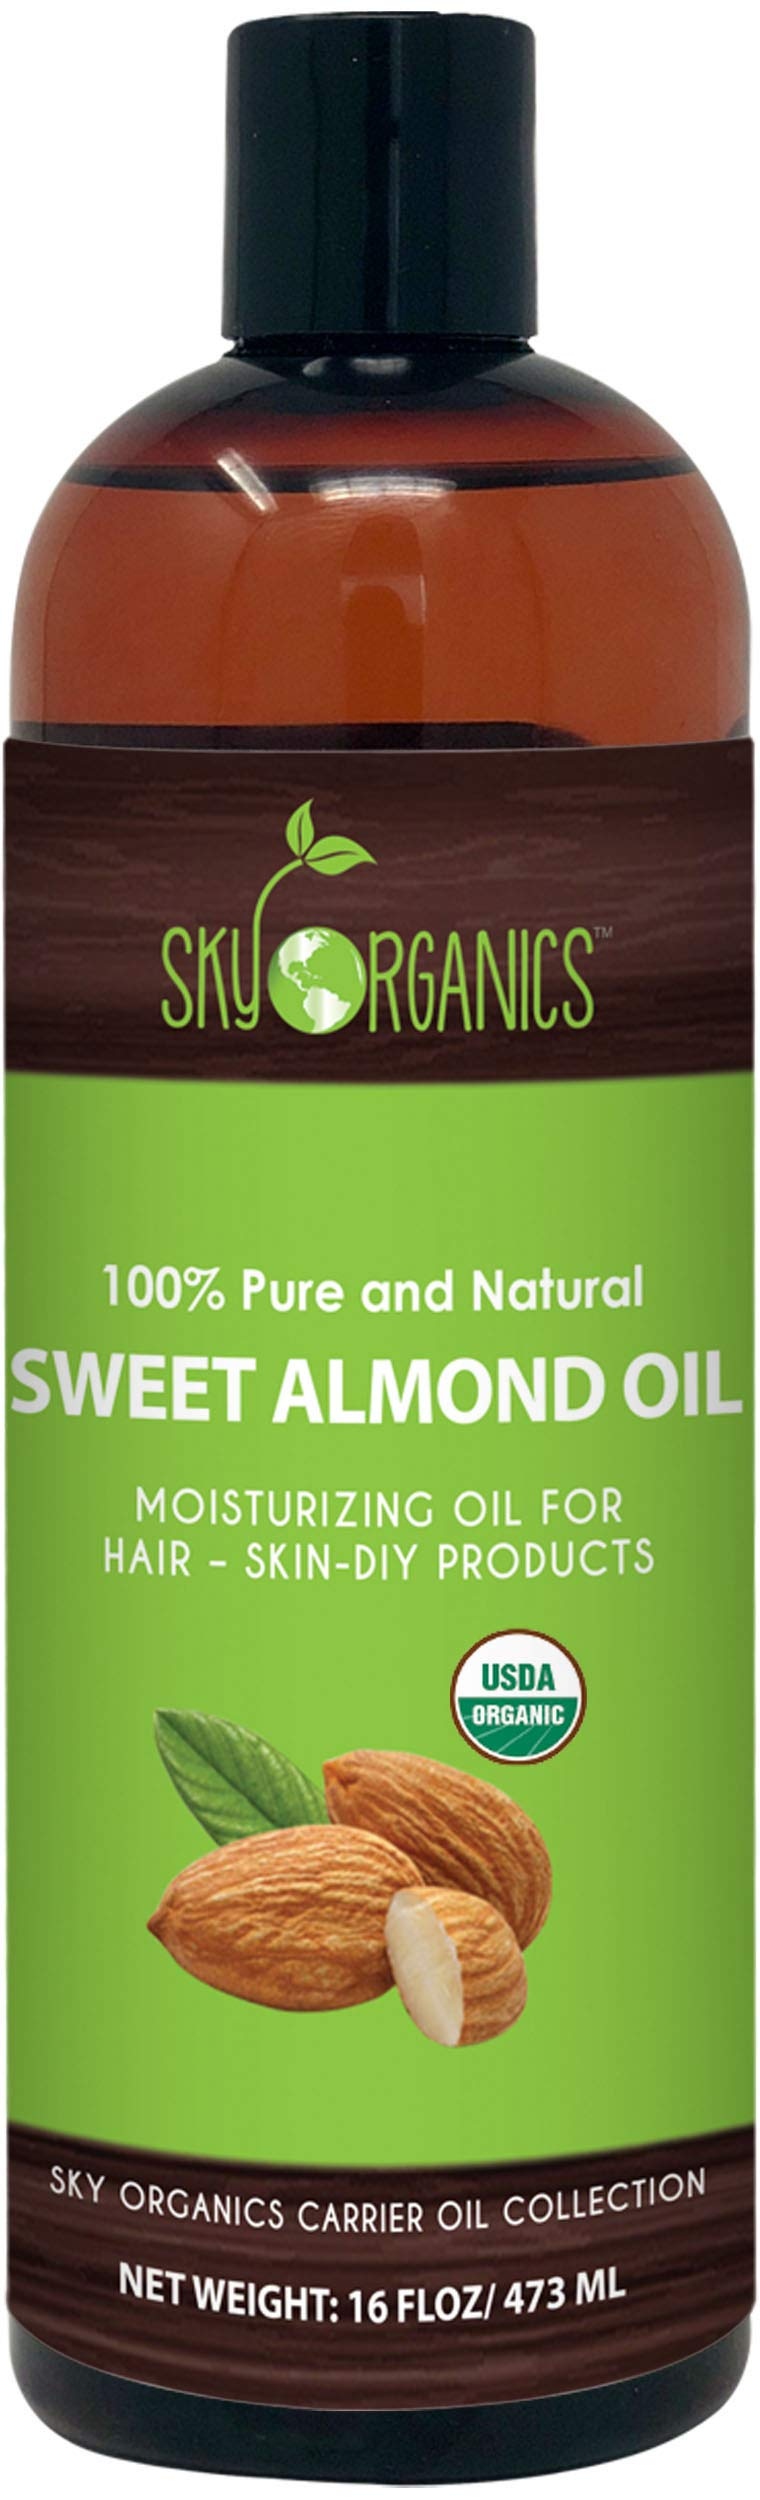 Sweet Almond Oil by Sky Organics 16oz- 100% Pure, Cold-Pressed, Organic Almond Oil. Great As Baby Oil- Anti- Wrinkles- Anti-Aging. Almond Oil- Carrier Oil for Massage.Bath (1 Pack) by Sky Organics